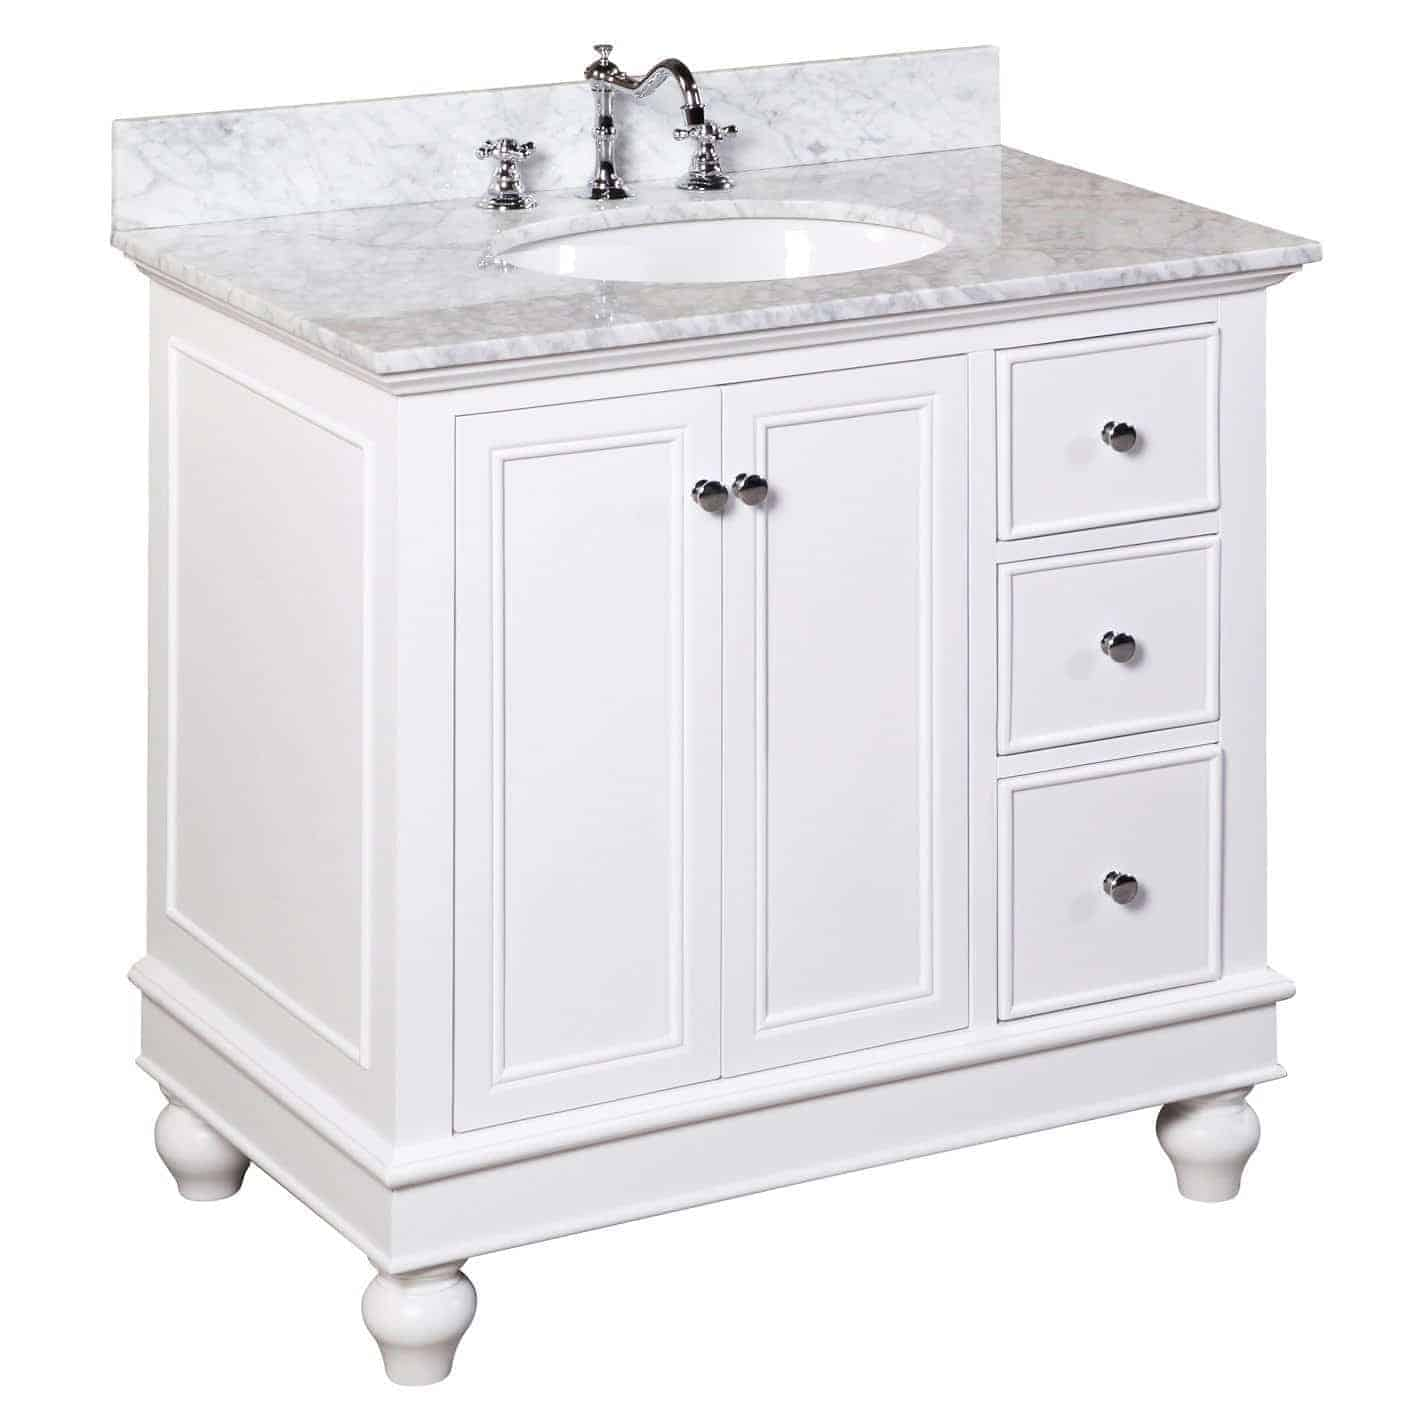 Fabulous Wayfair Bella vanity